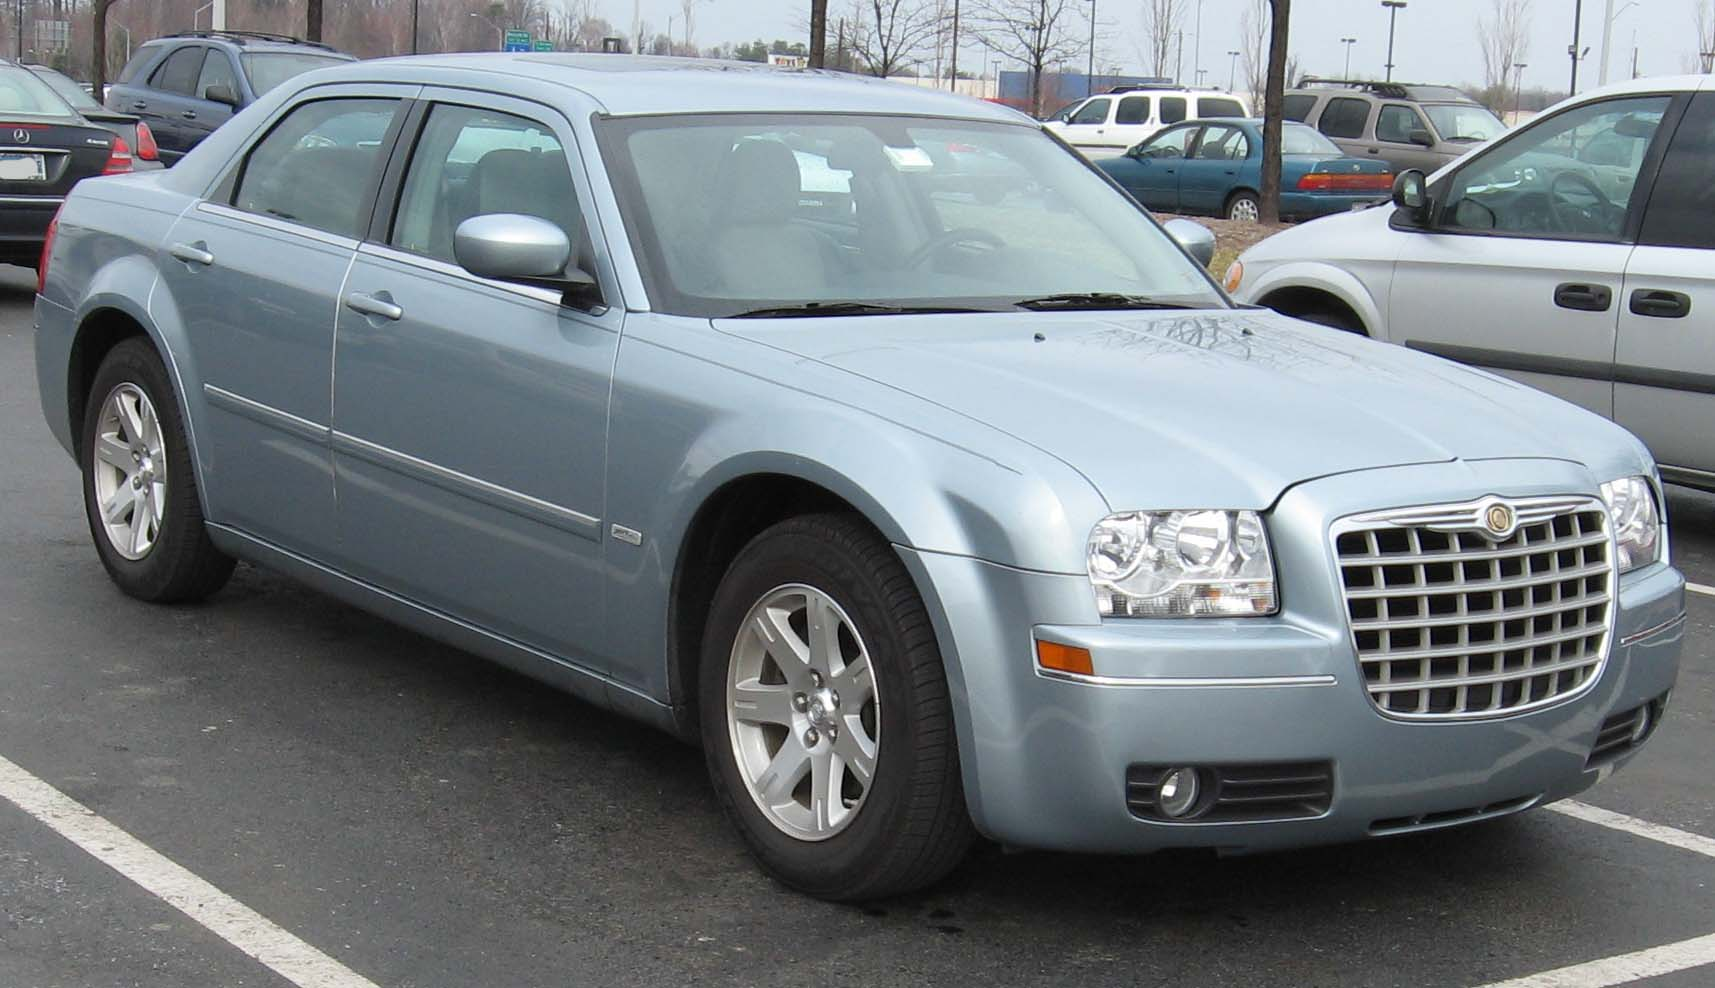 File:05-07 Chrysler 300.jpg - Wikimedia Commons